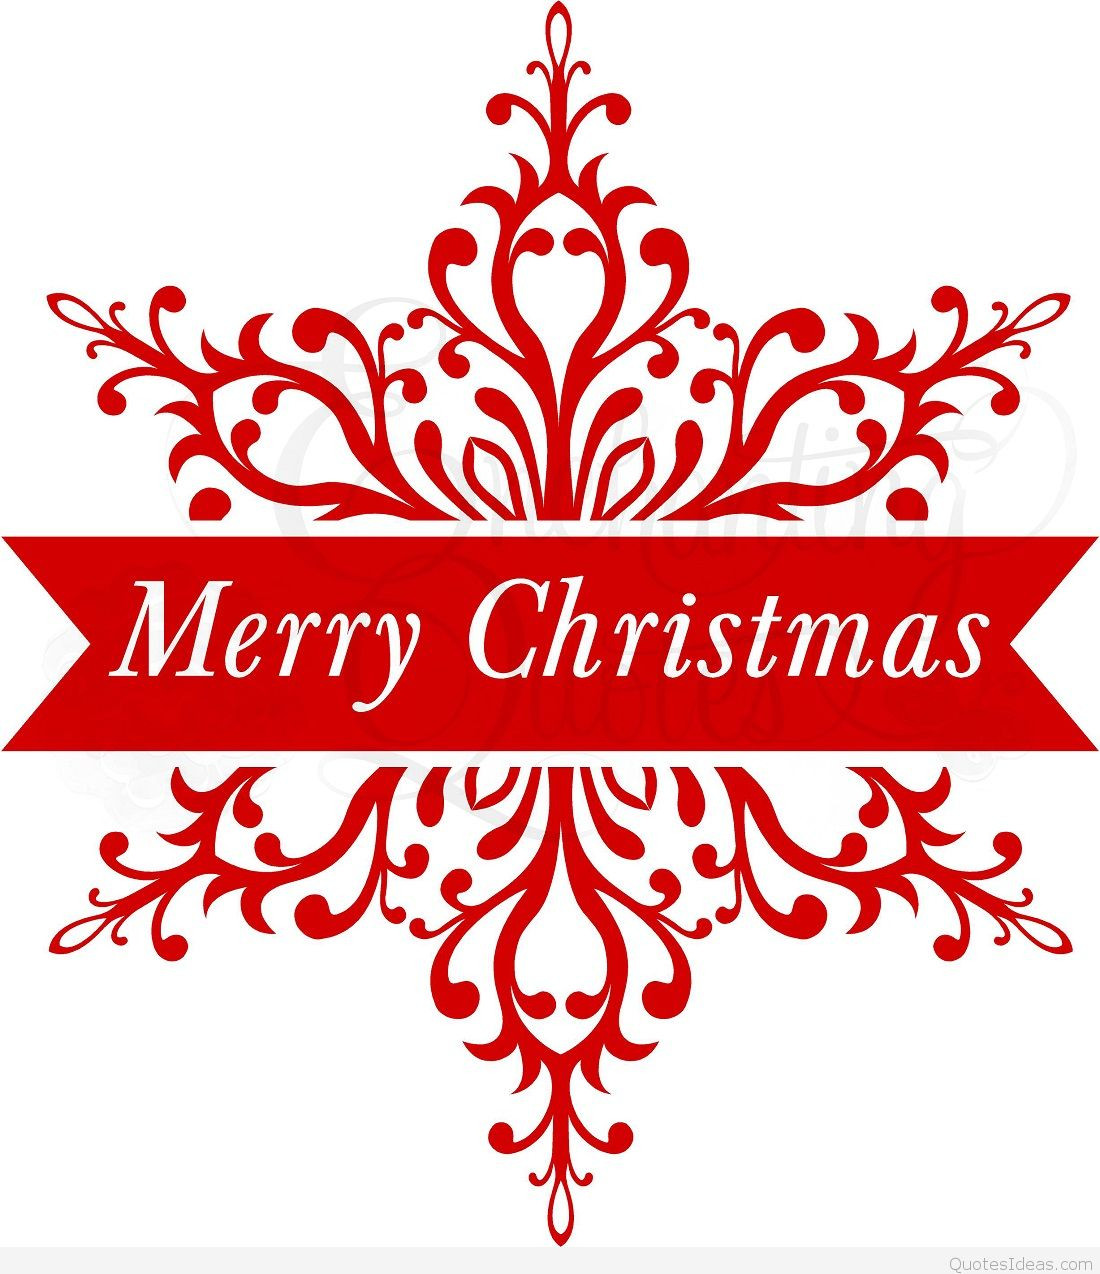 Christmas Pic Quotes  Top Merry Christmas quotes and sayings with wallpapers 2015